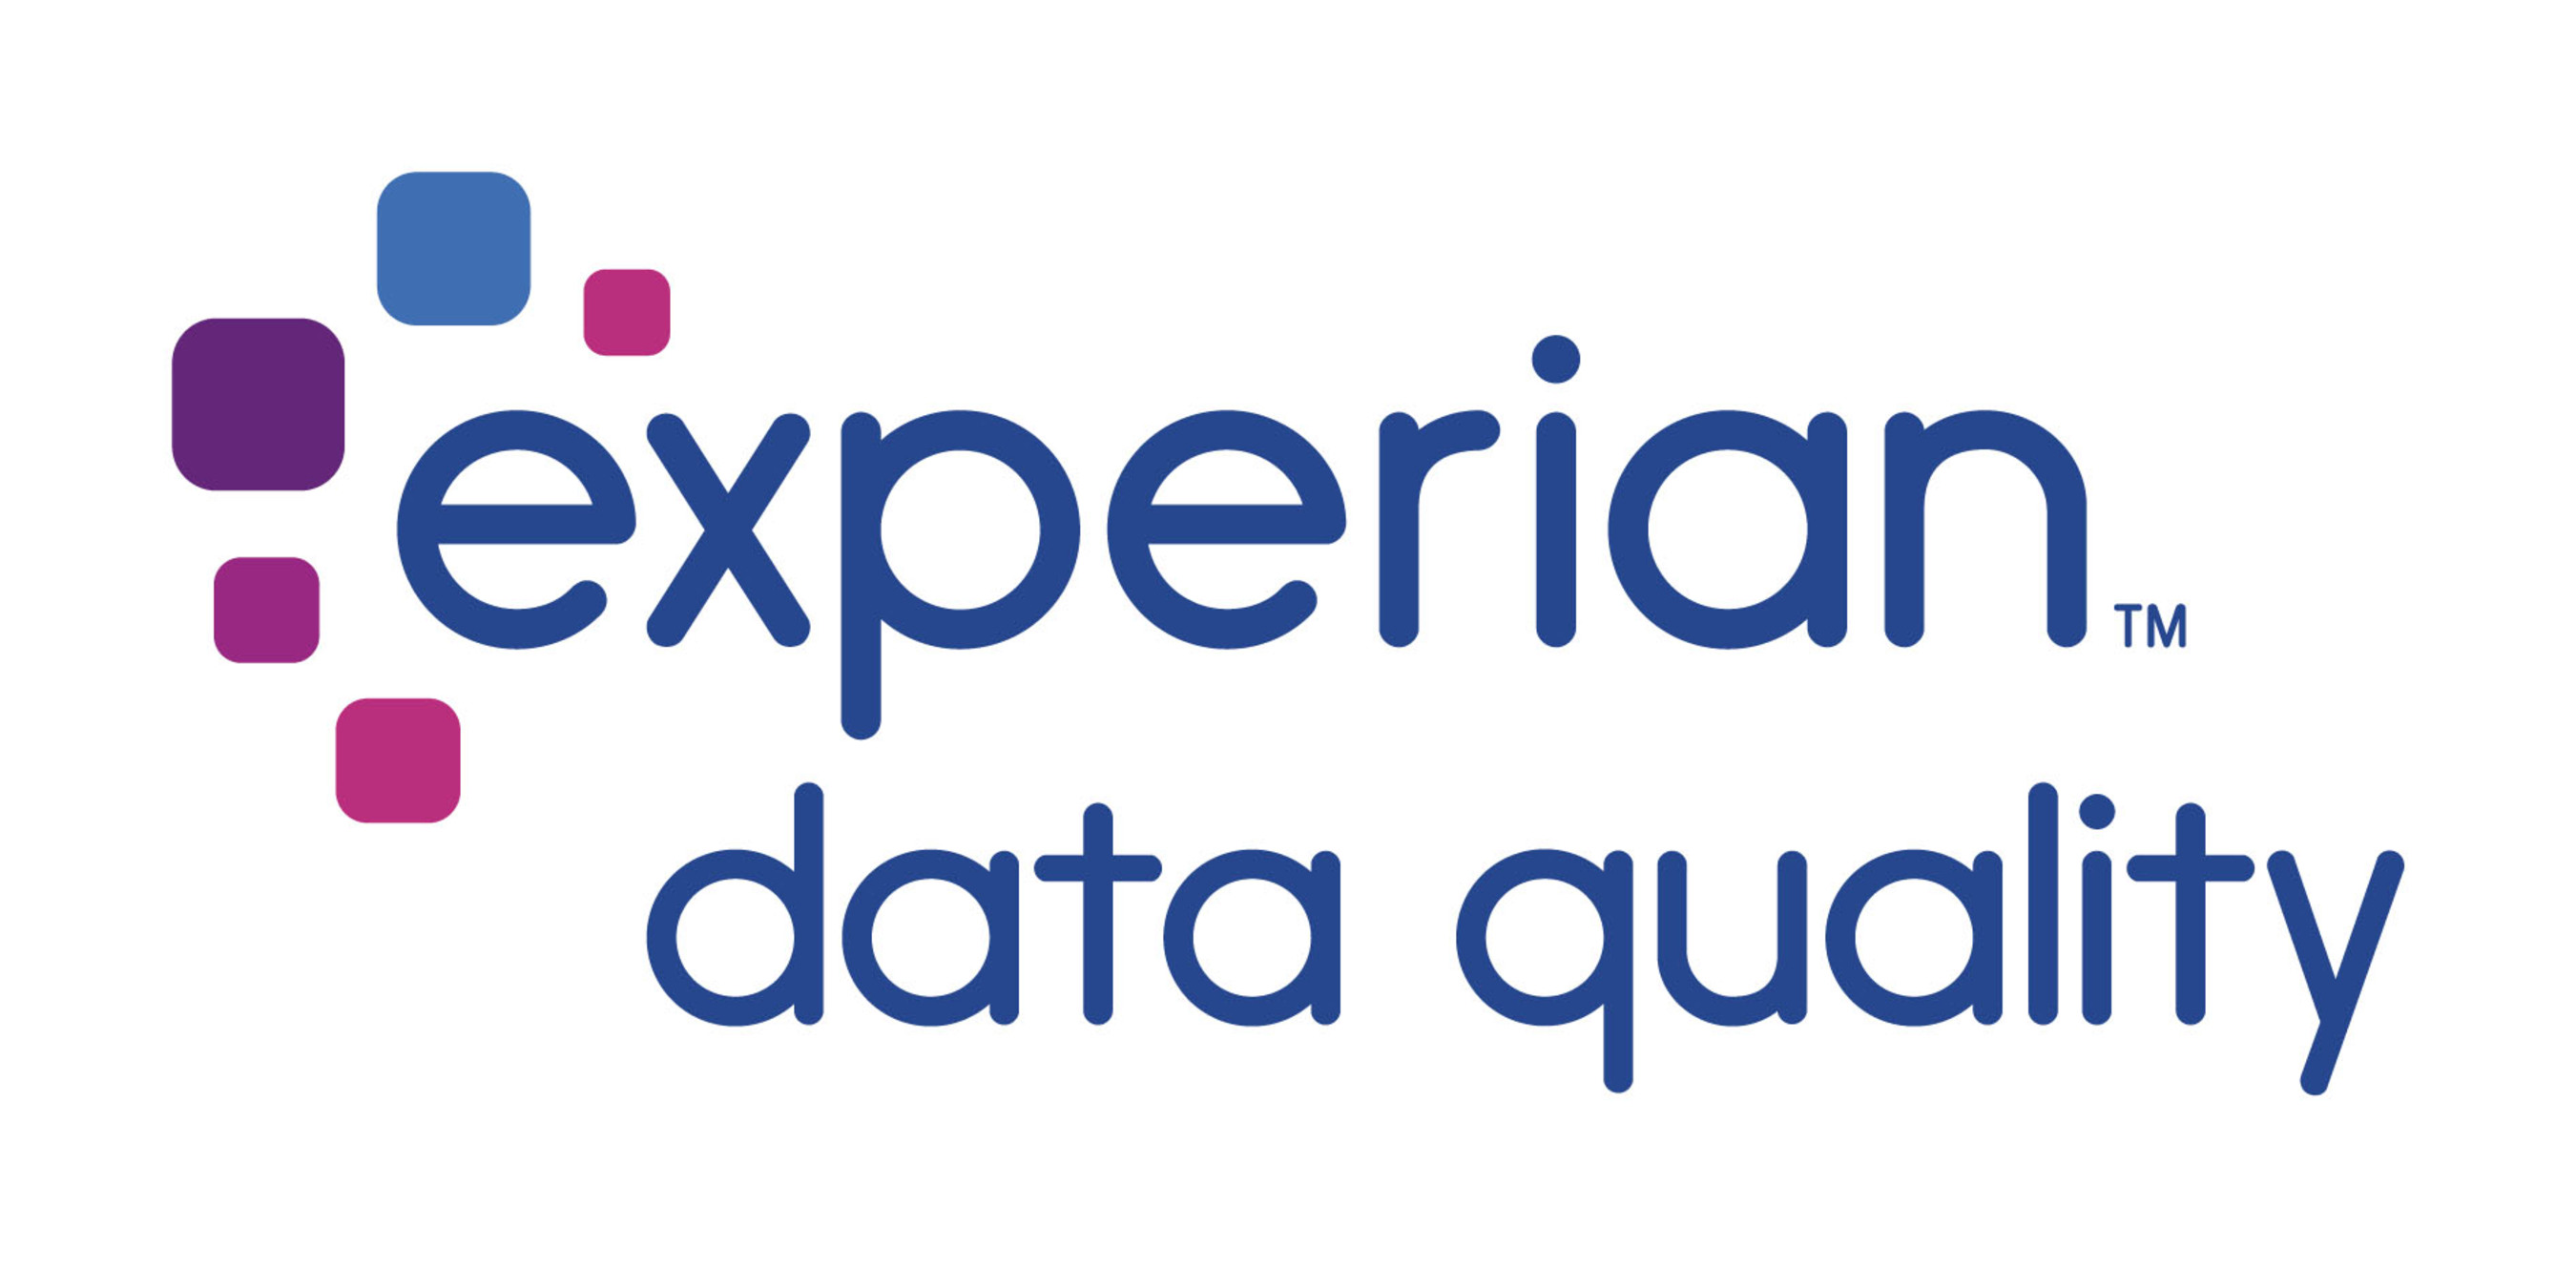 Experian Data Quality launches new self-service email validation tool